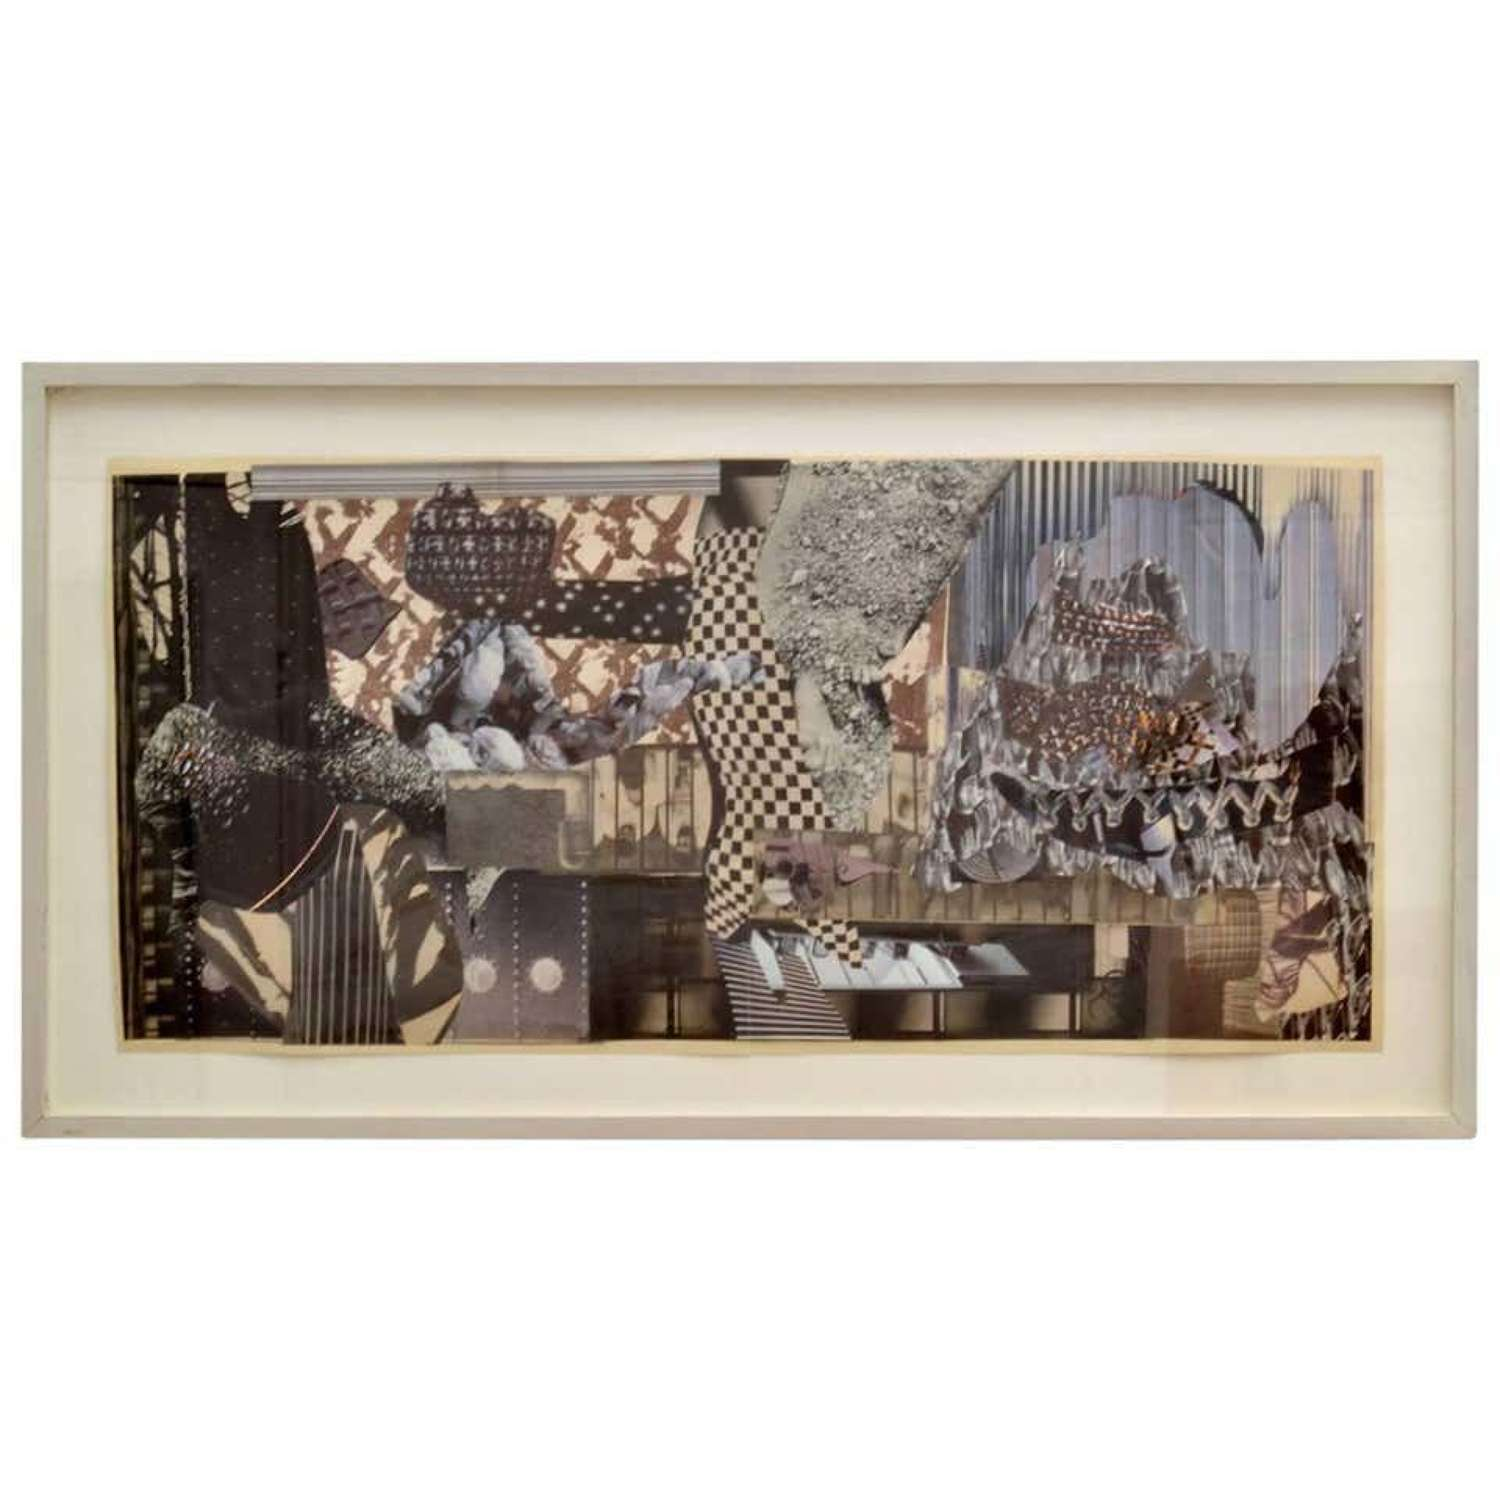 Abstract Collage Art in Black and White by B Allan, 1993